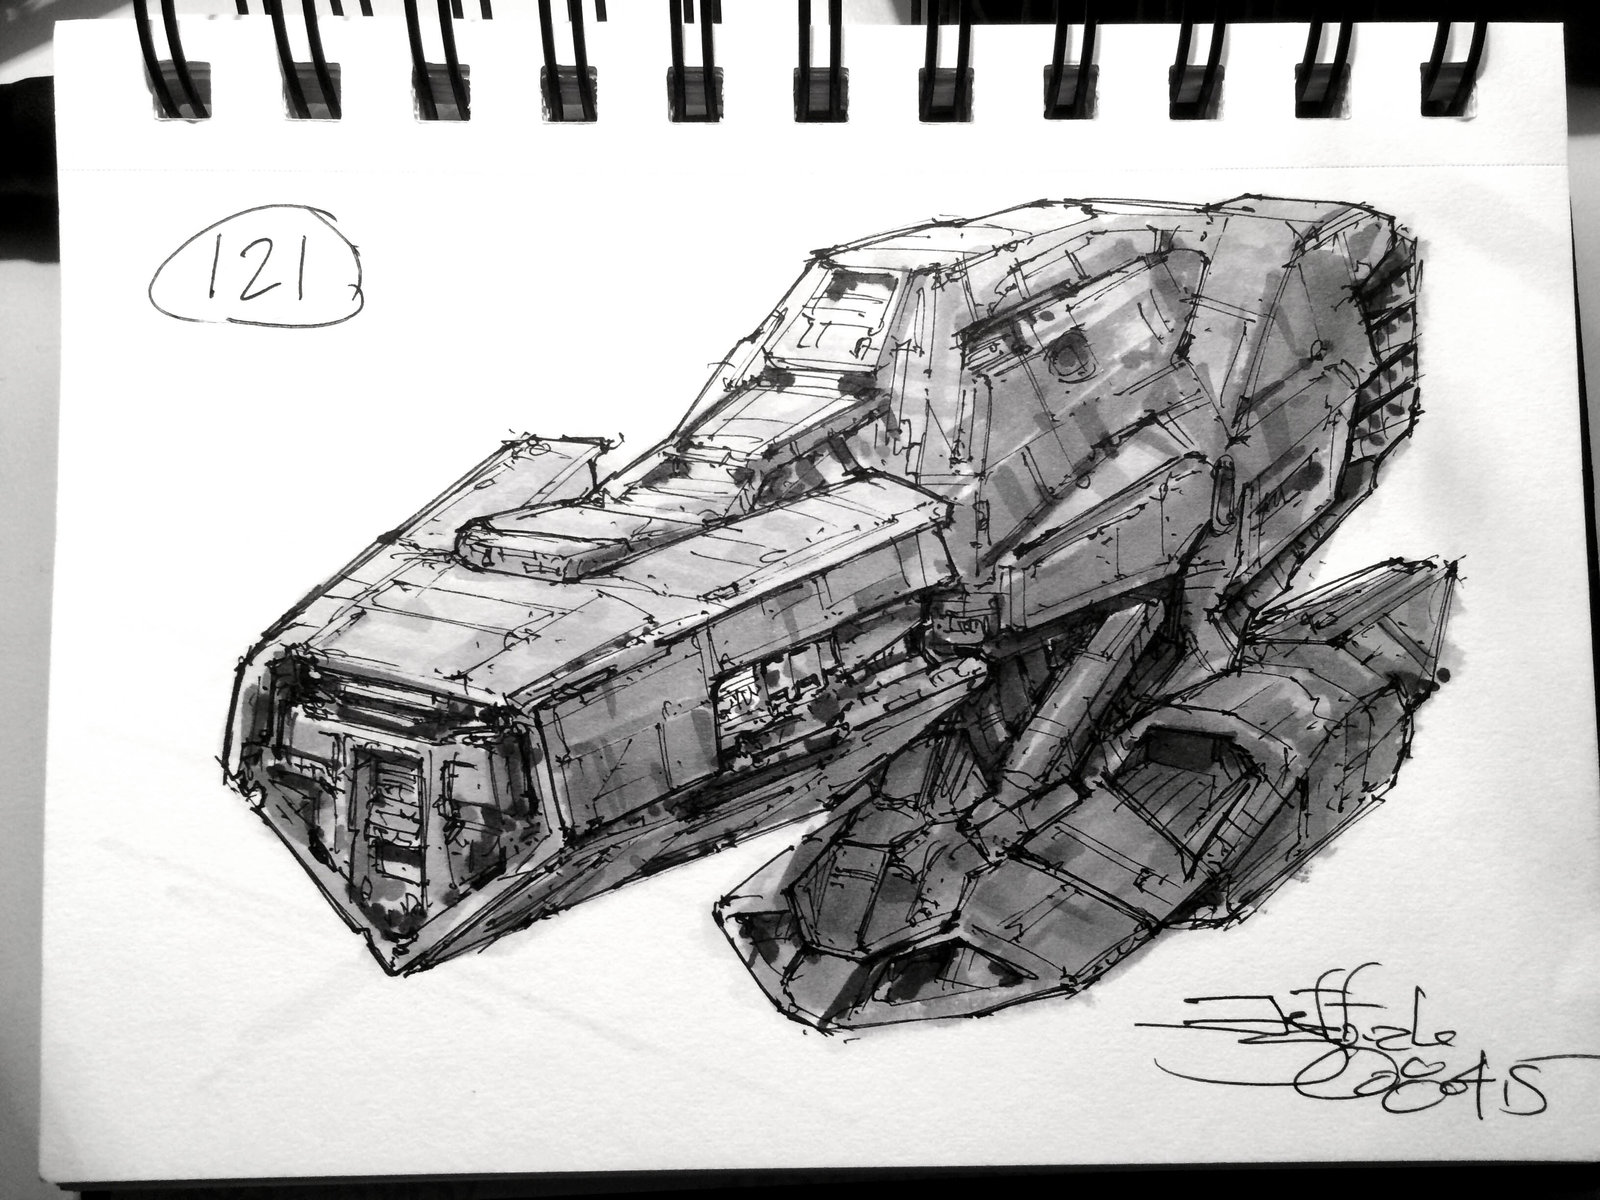 SpaceshipADay 121